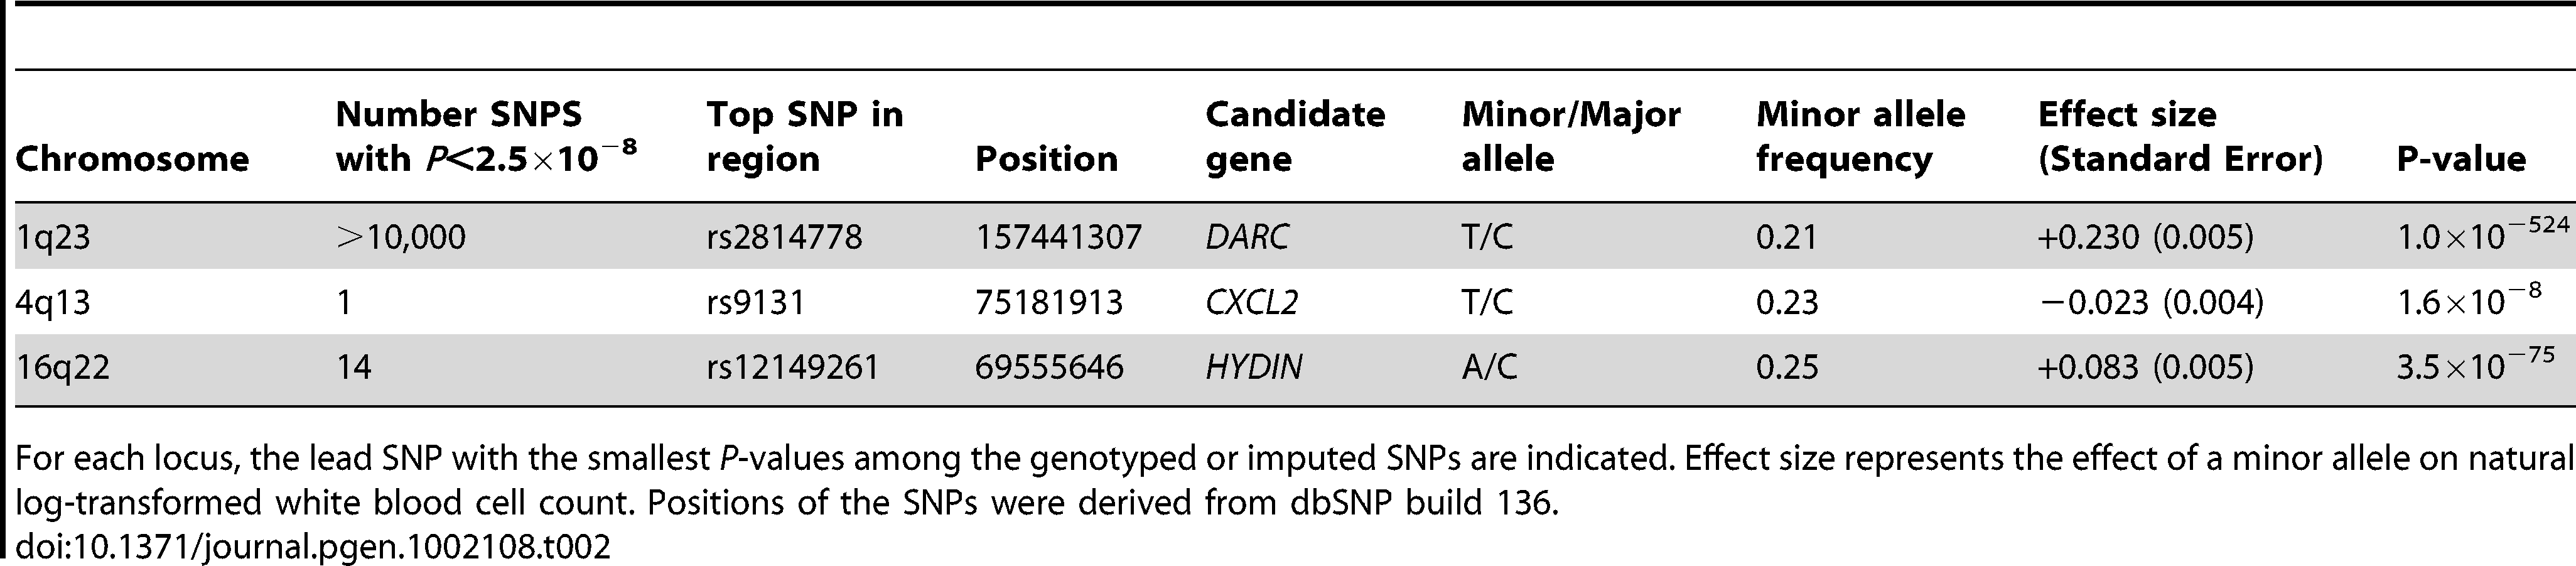 Results of genome-wide significant SNPs for total white blood cell count.